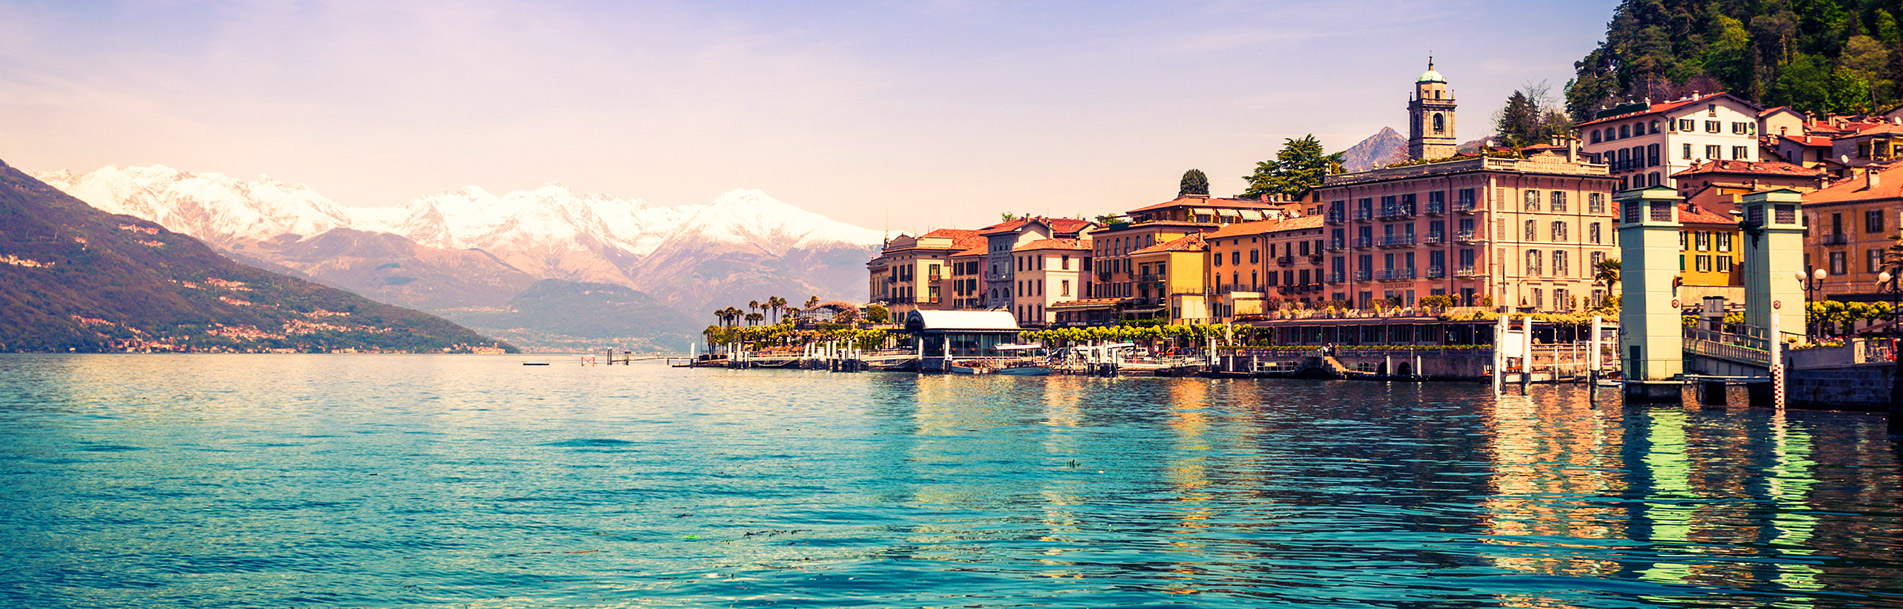 lake como singles Authenitc italy with bologna, cinque terre, italian riviera and bellagio on lake como explore italy further  your italy story is unlike any other tour.